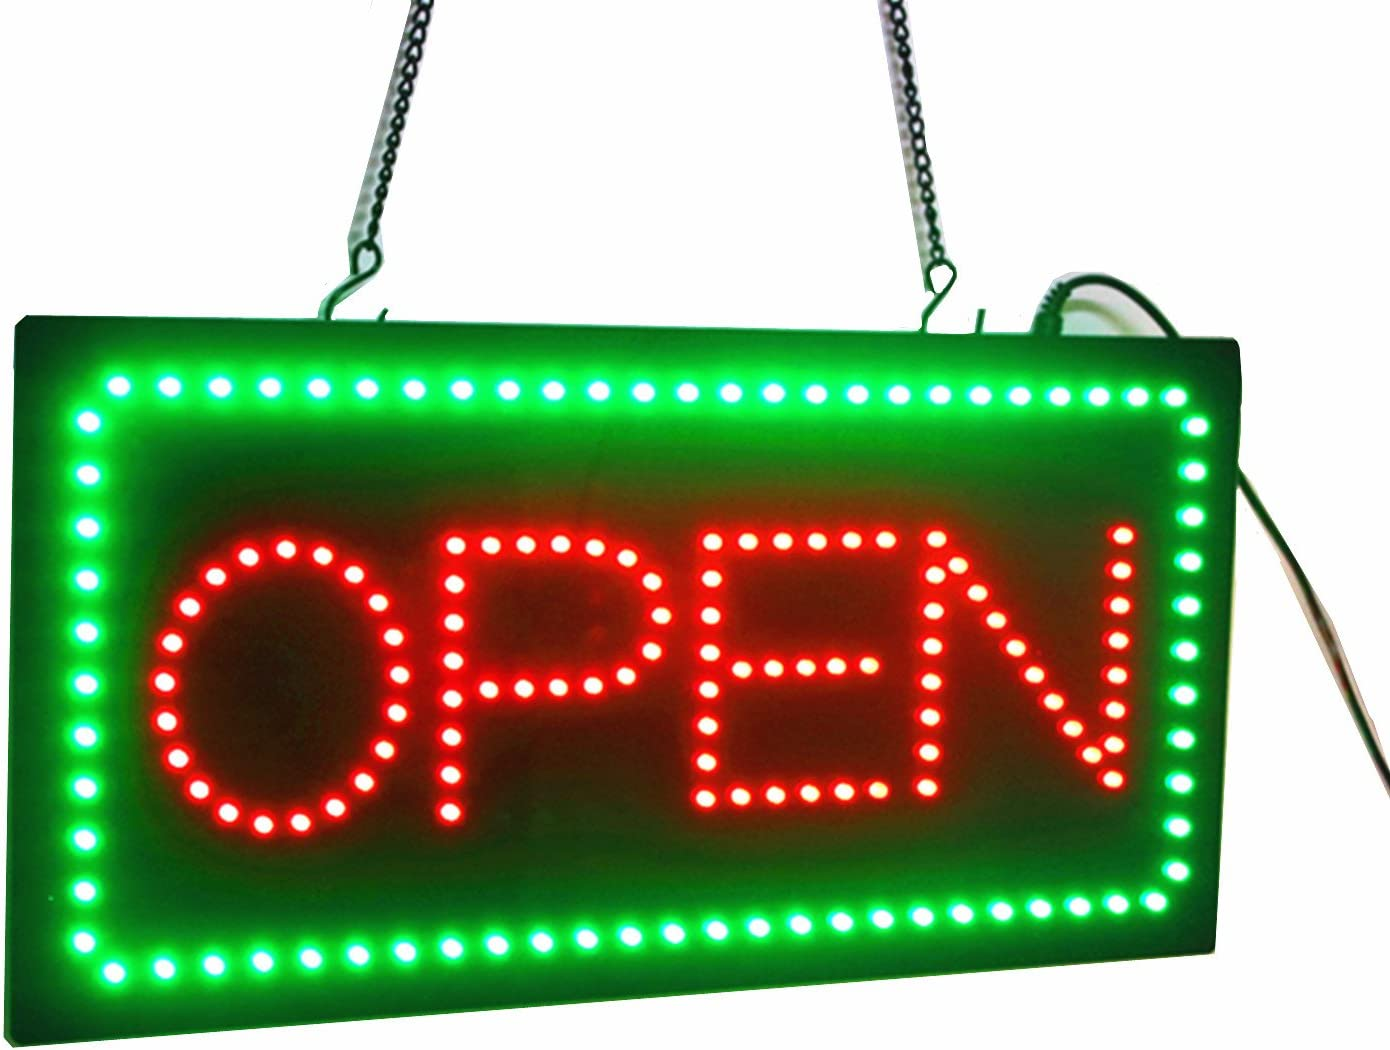 Large Rectangle Advertising Board Electric Lighted Open Sign for Business Display Light Cafe Shop Bar Store Restaurant Display 21x10 LED Sign Display